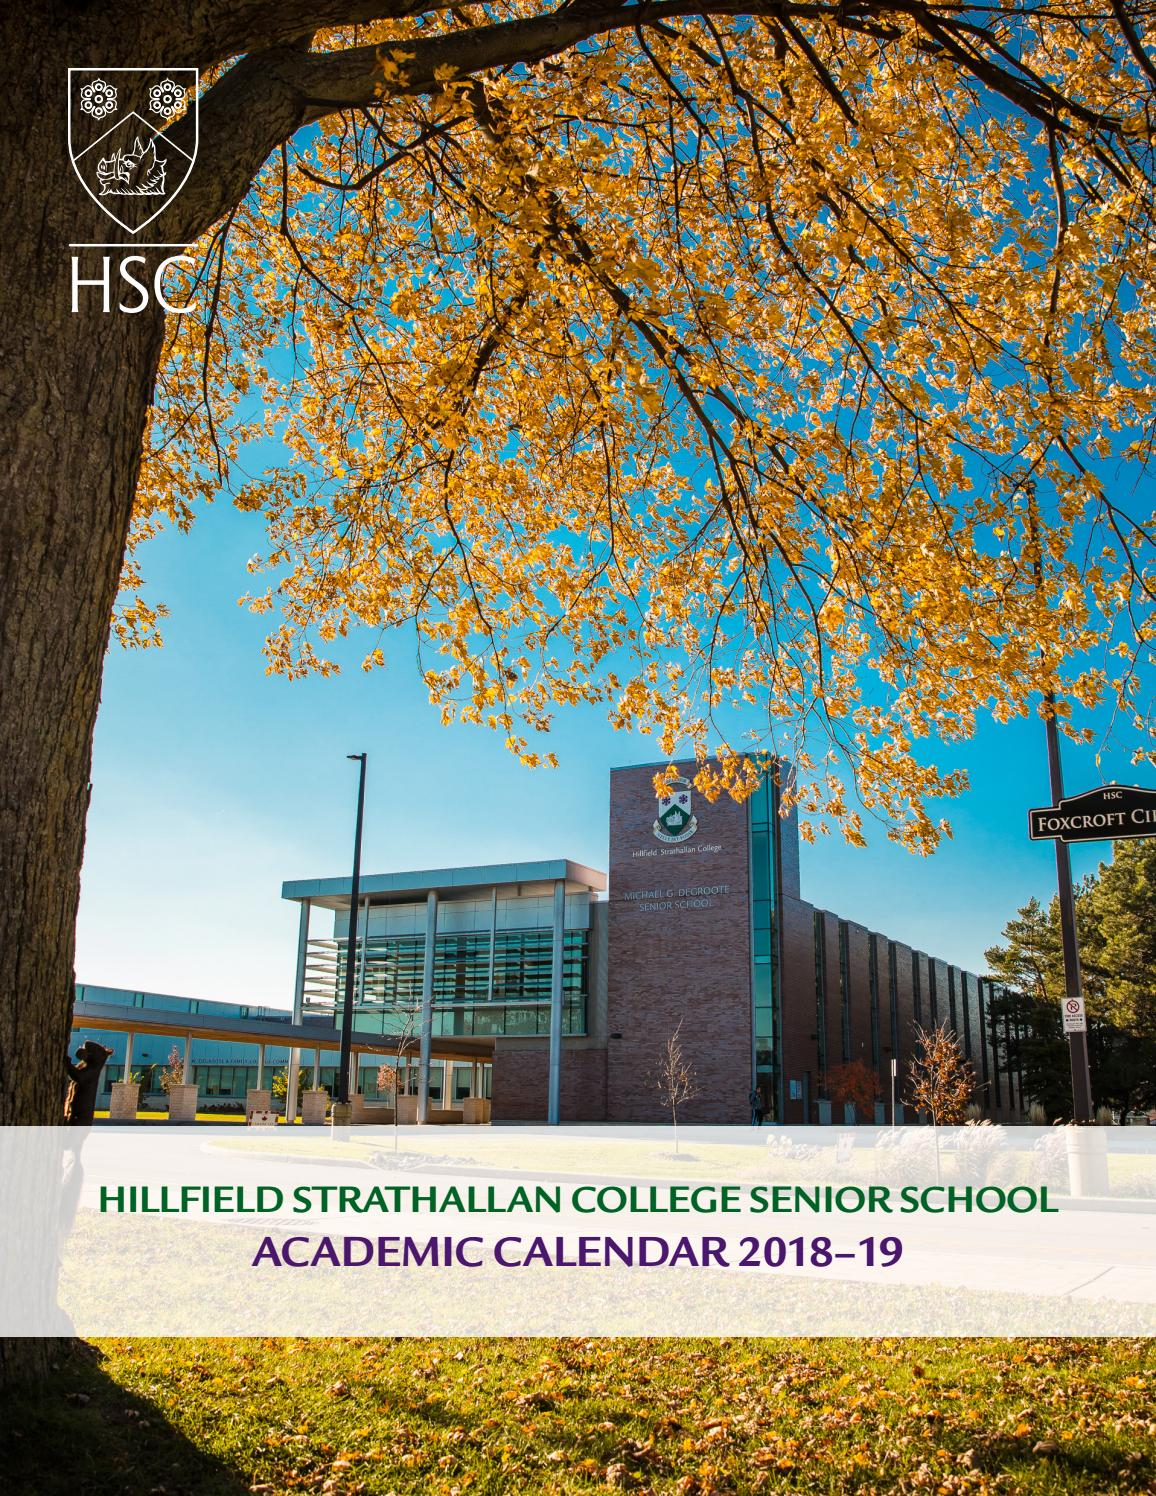 Senior School Course Calendar 2018-19 by Hillfield